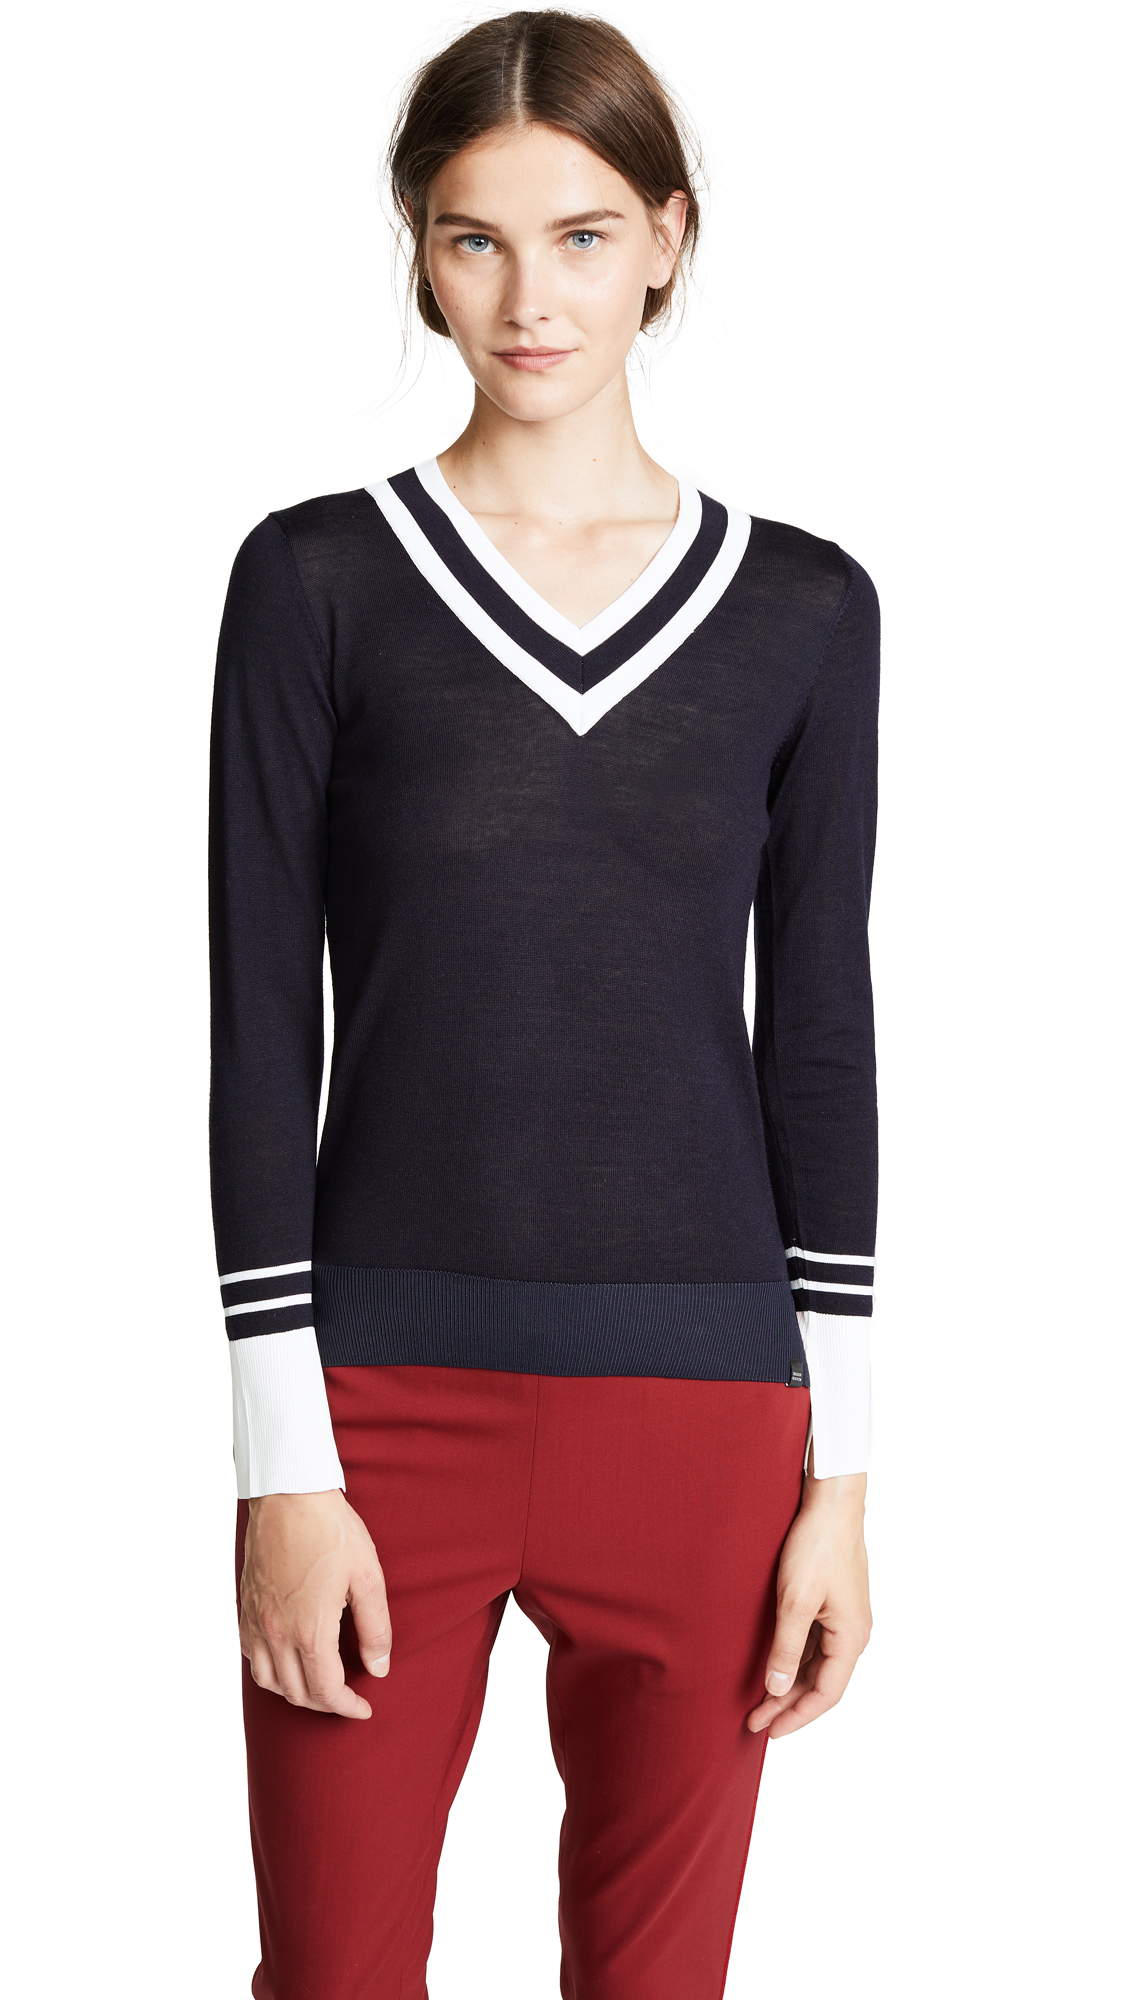 SCOTCH & SODA/MAISON SCOTCH V NECK KNIT TOP